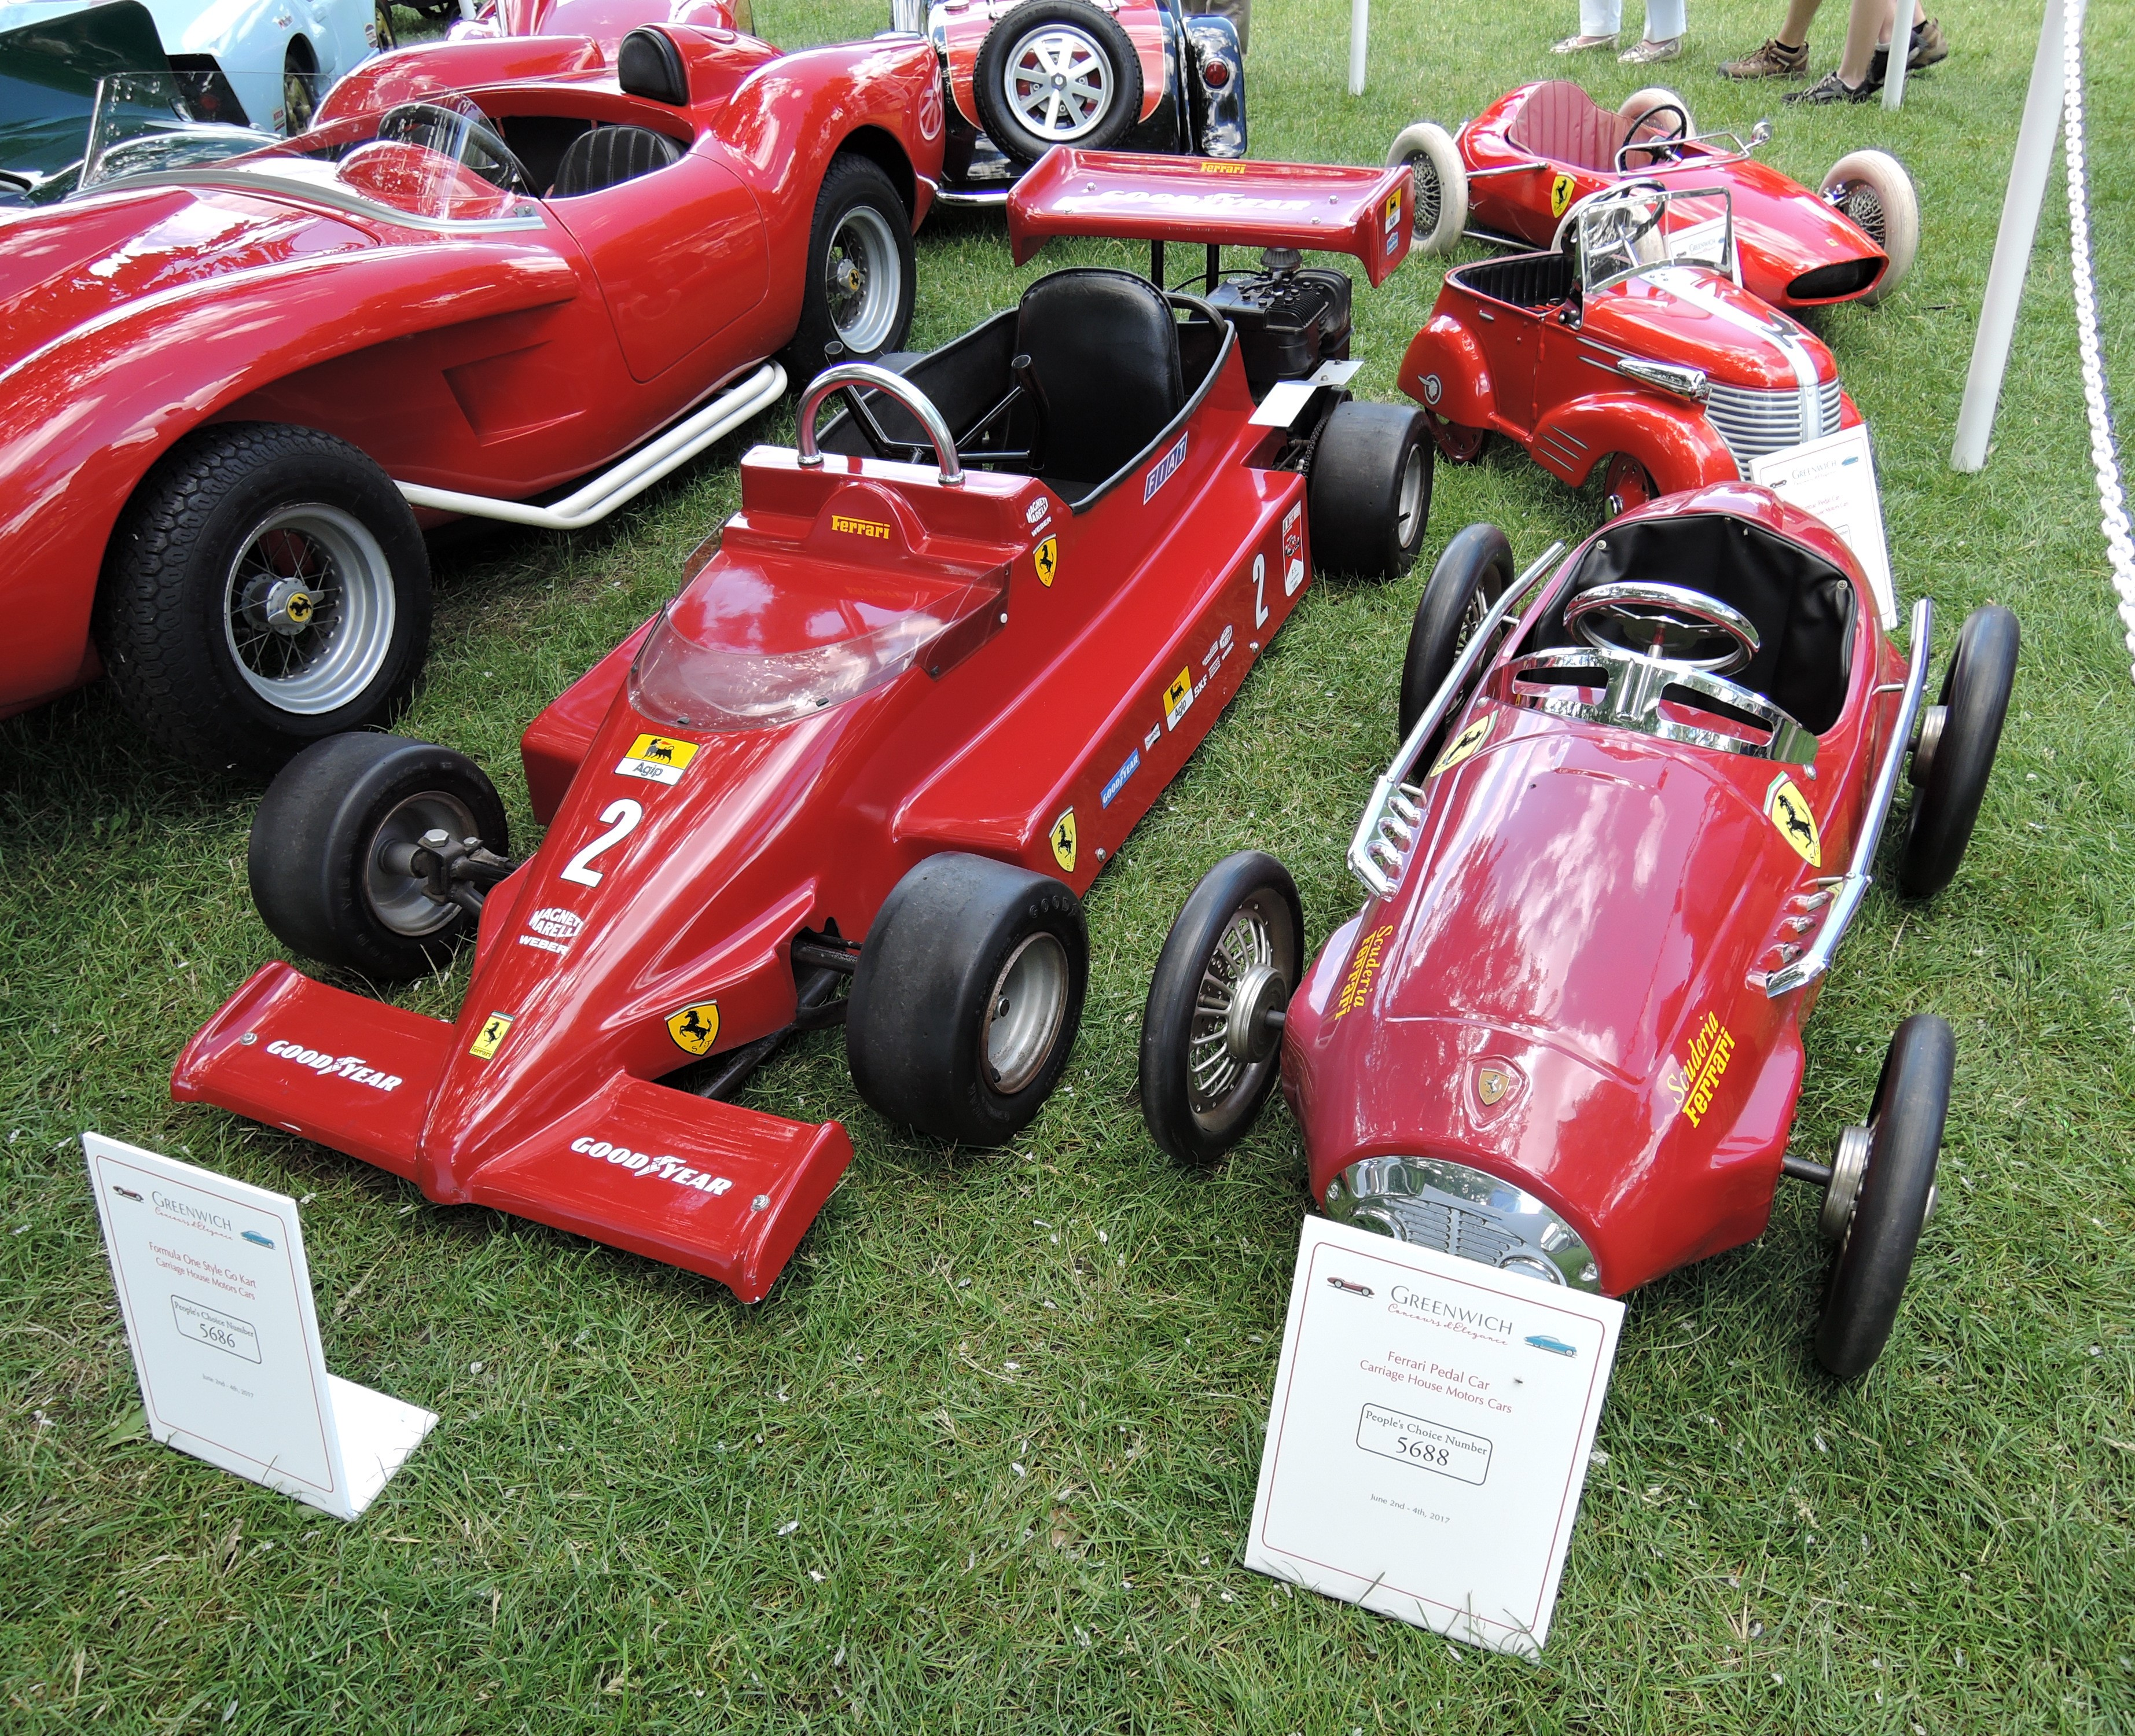 red A Formula One Style Go Kart and Ferrari Pedal Car - Greenwich Concours d'Elegance 2017